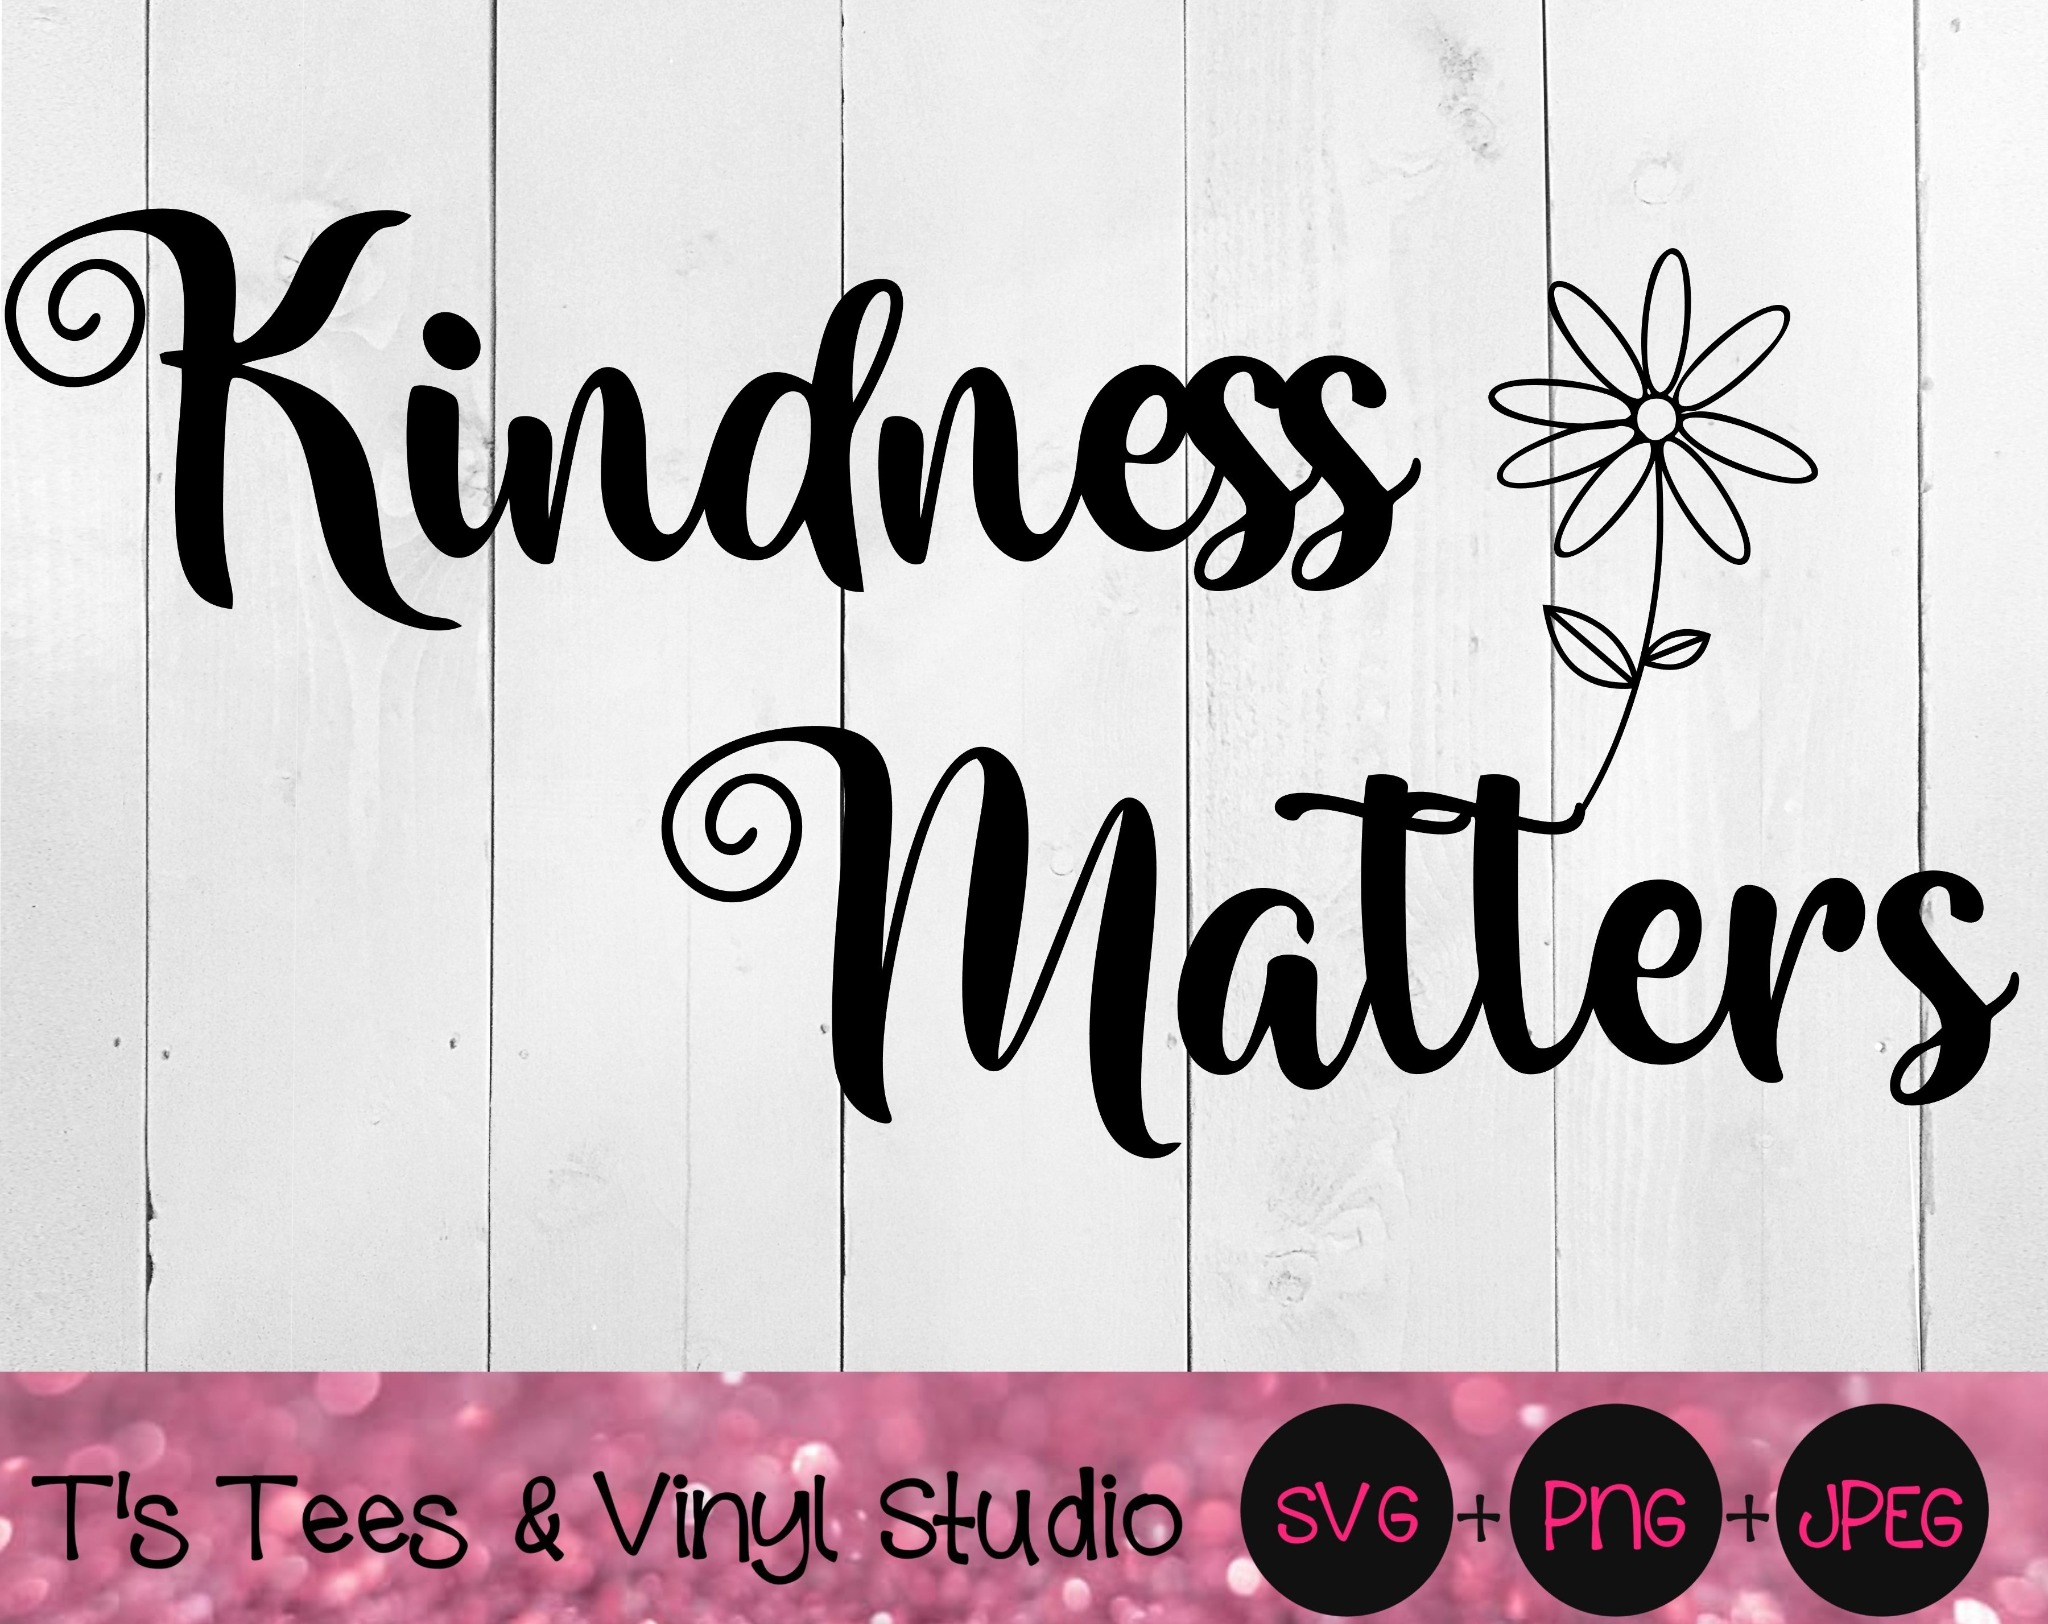 Kindness Svg, Kindness Matters Png, Be Kind, No Hate, Flower, More Kindness, Love One Another